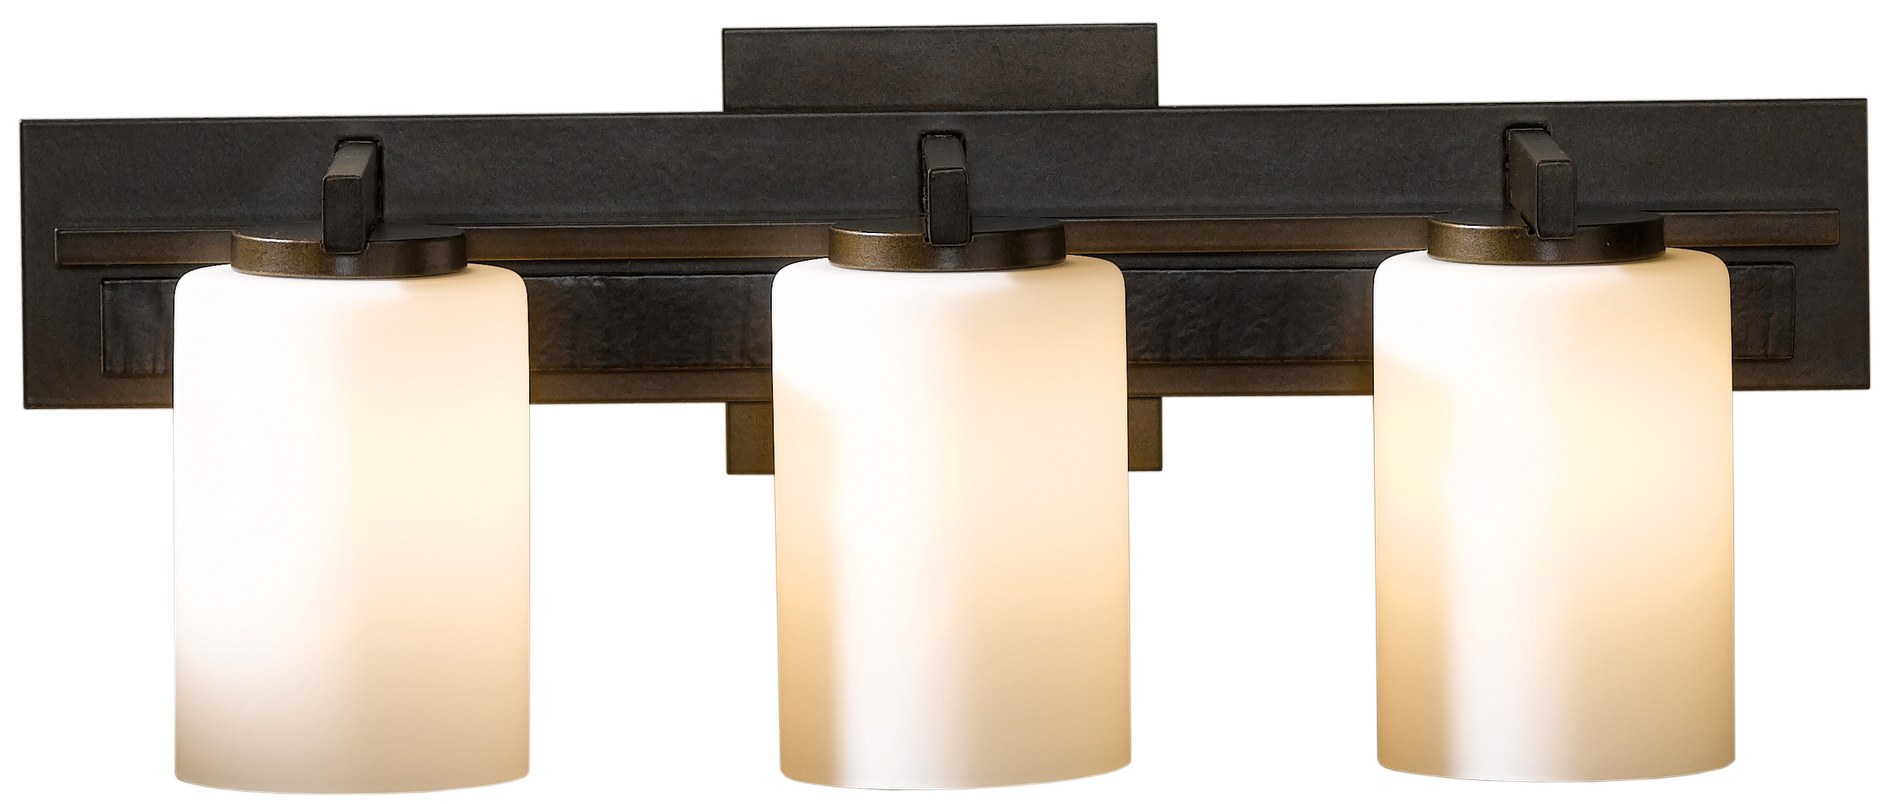 Ondrian Horizontal Bathroom Vanity Light By Hubbardton Forge 206303 1003